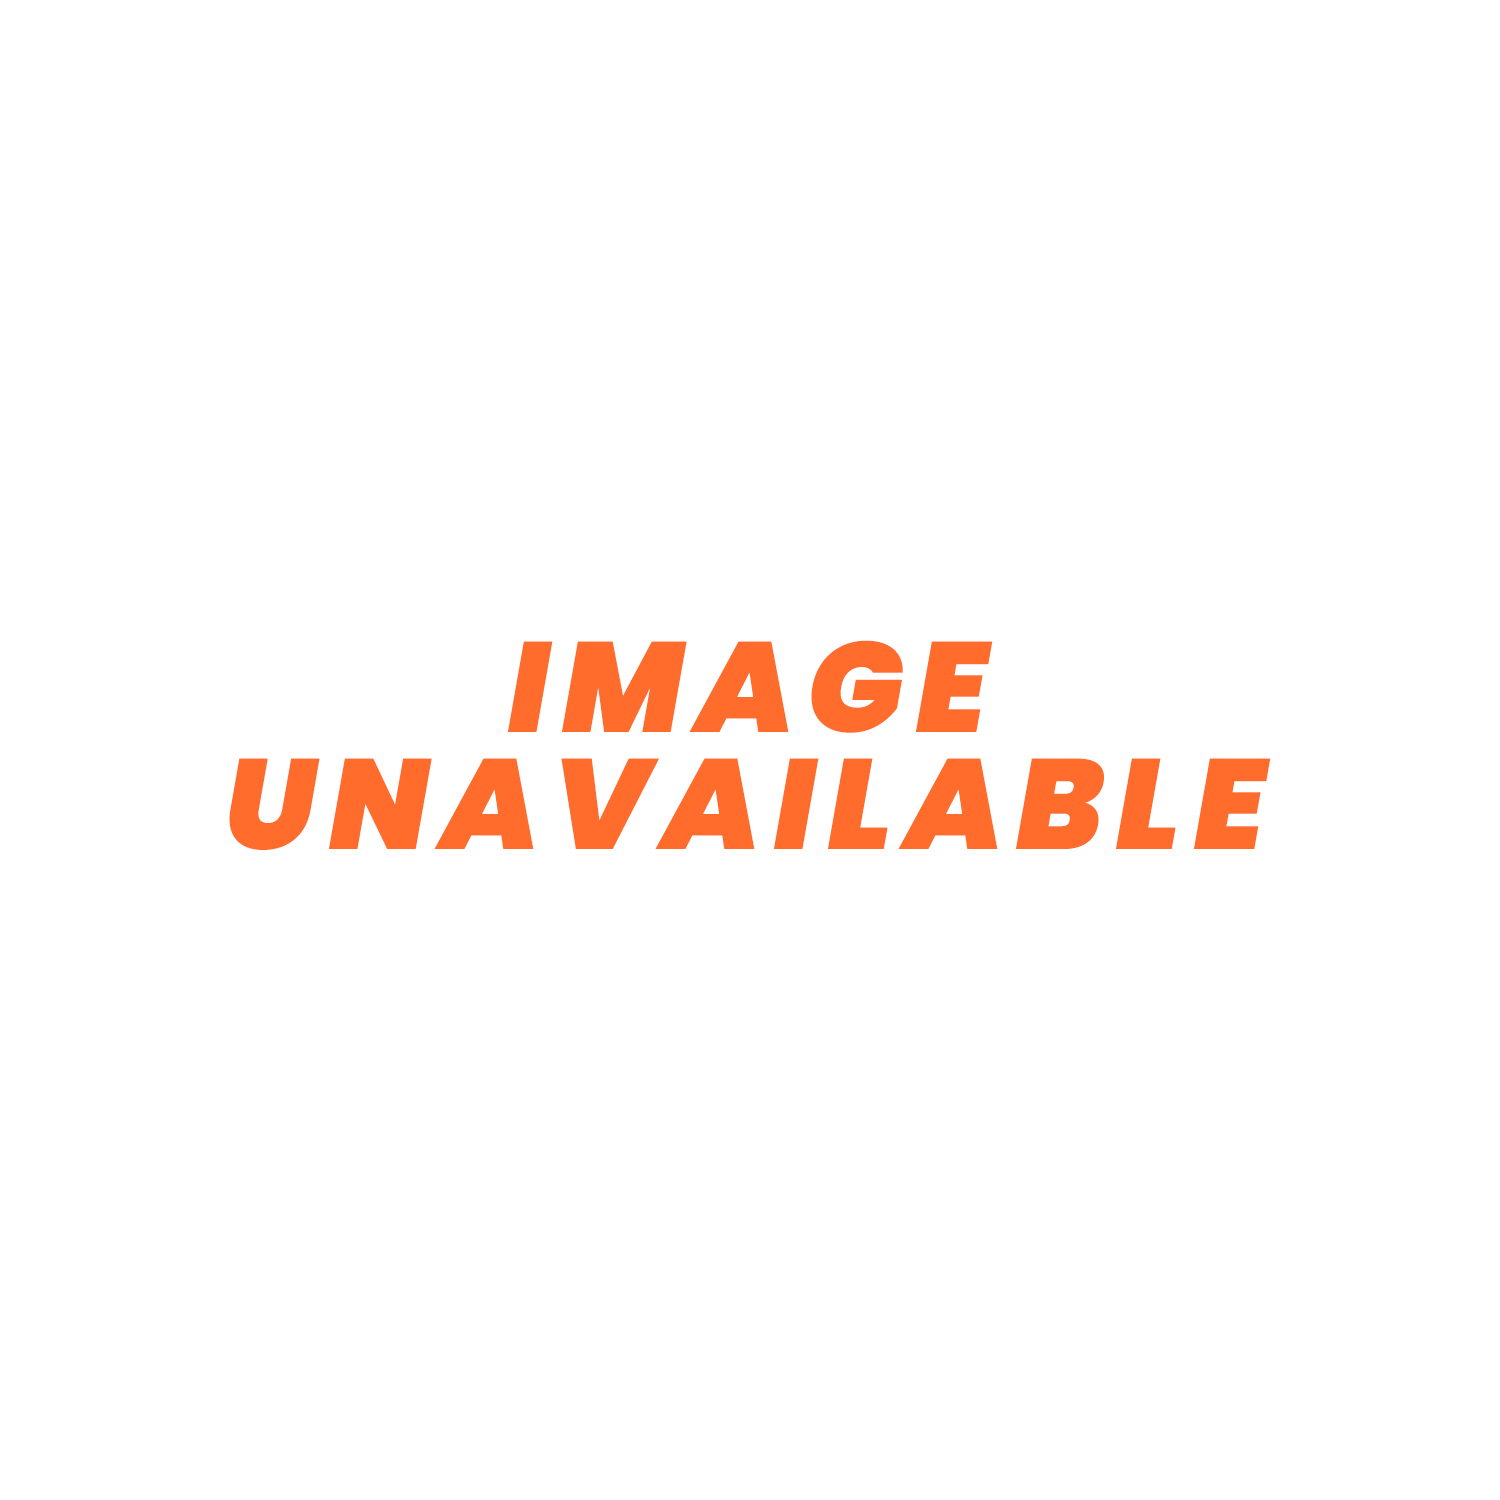 Jubilee 'O' Clip 304 Stainless Steel 5 - 7mm Dia Hose Clamp